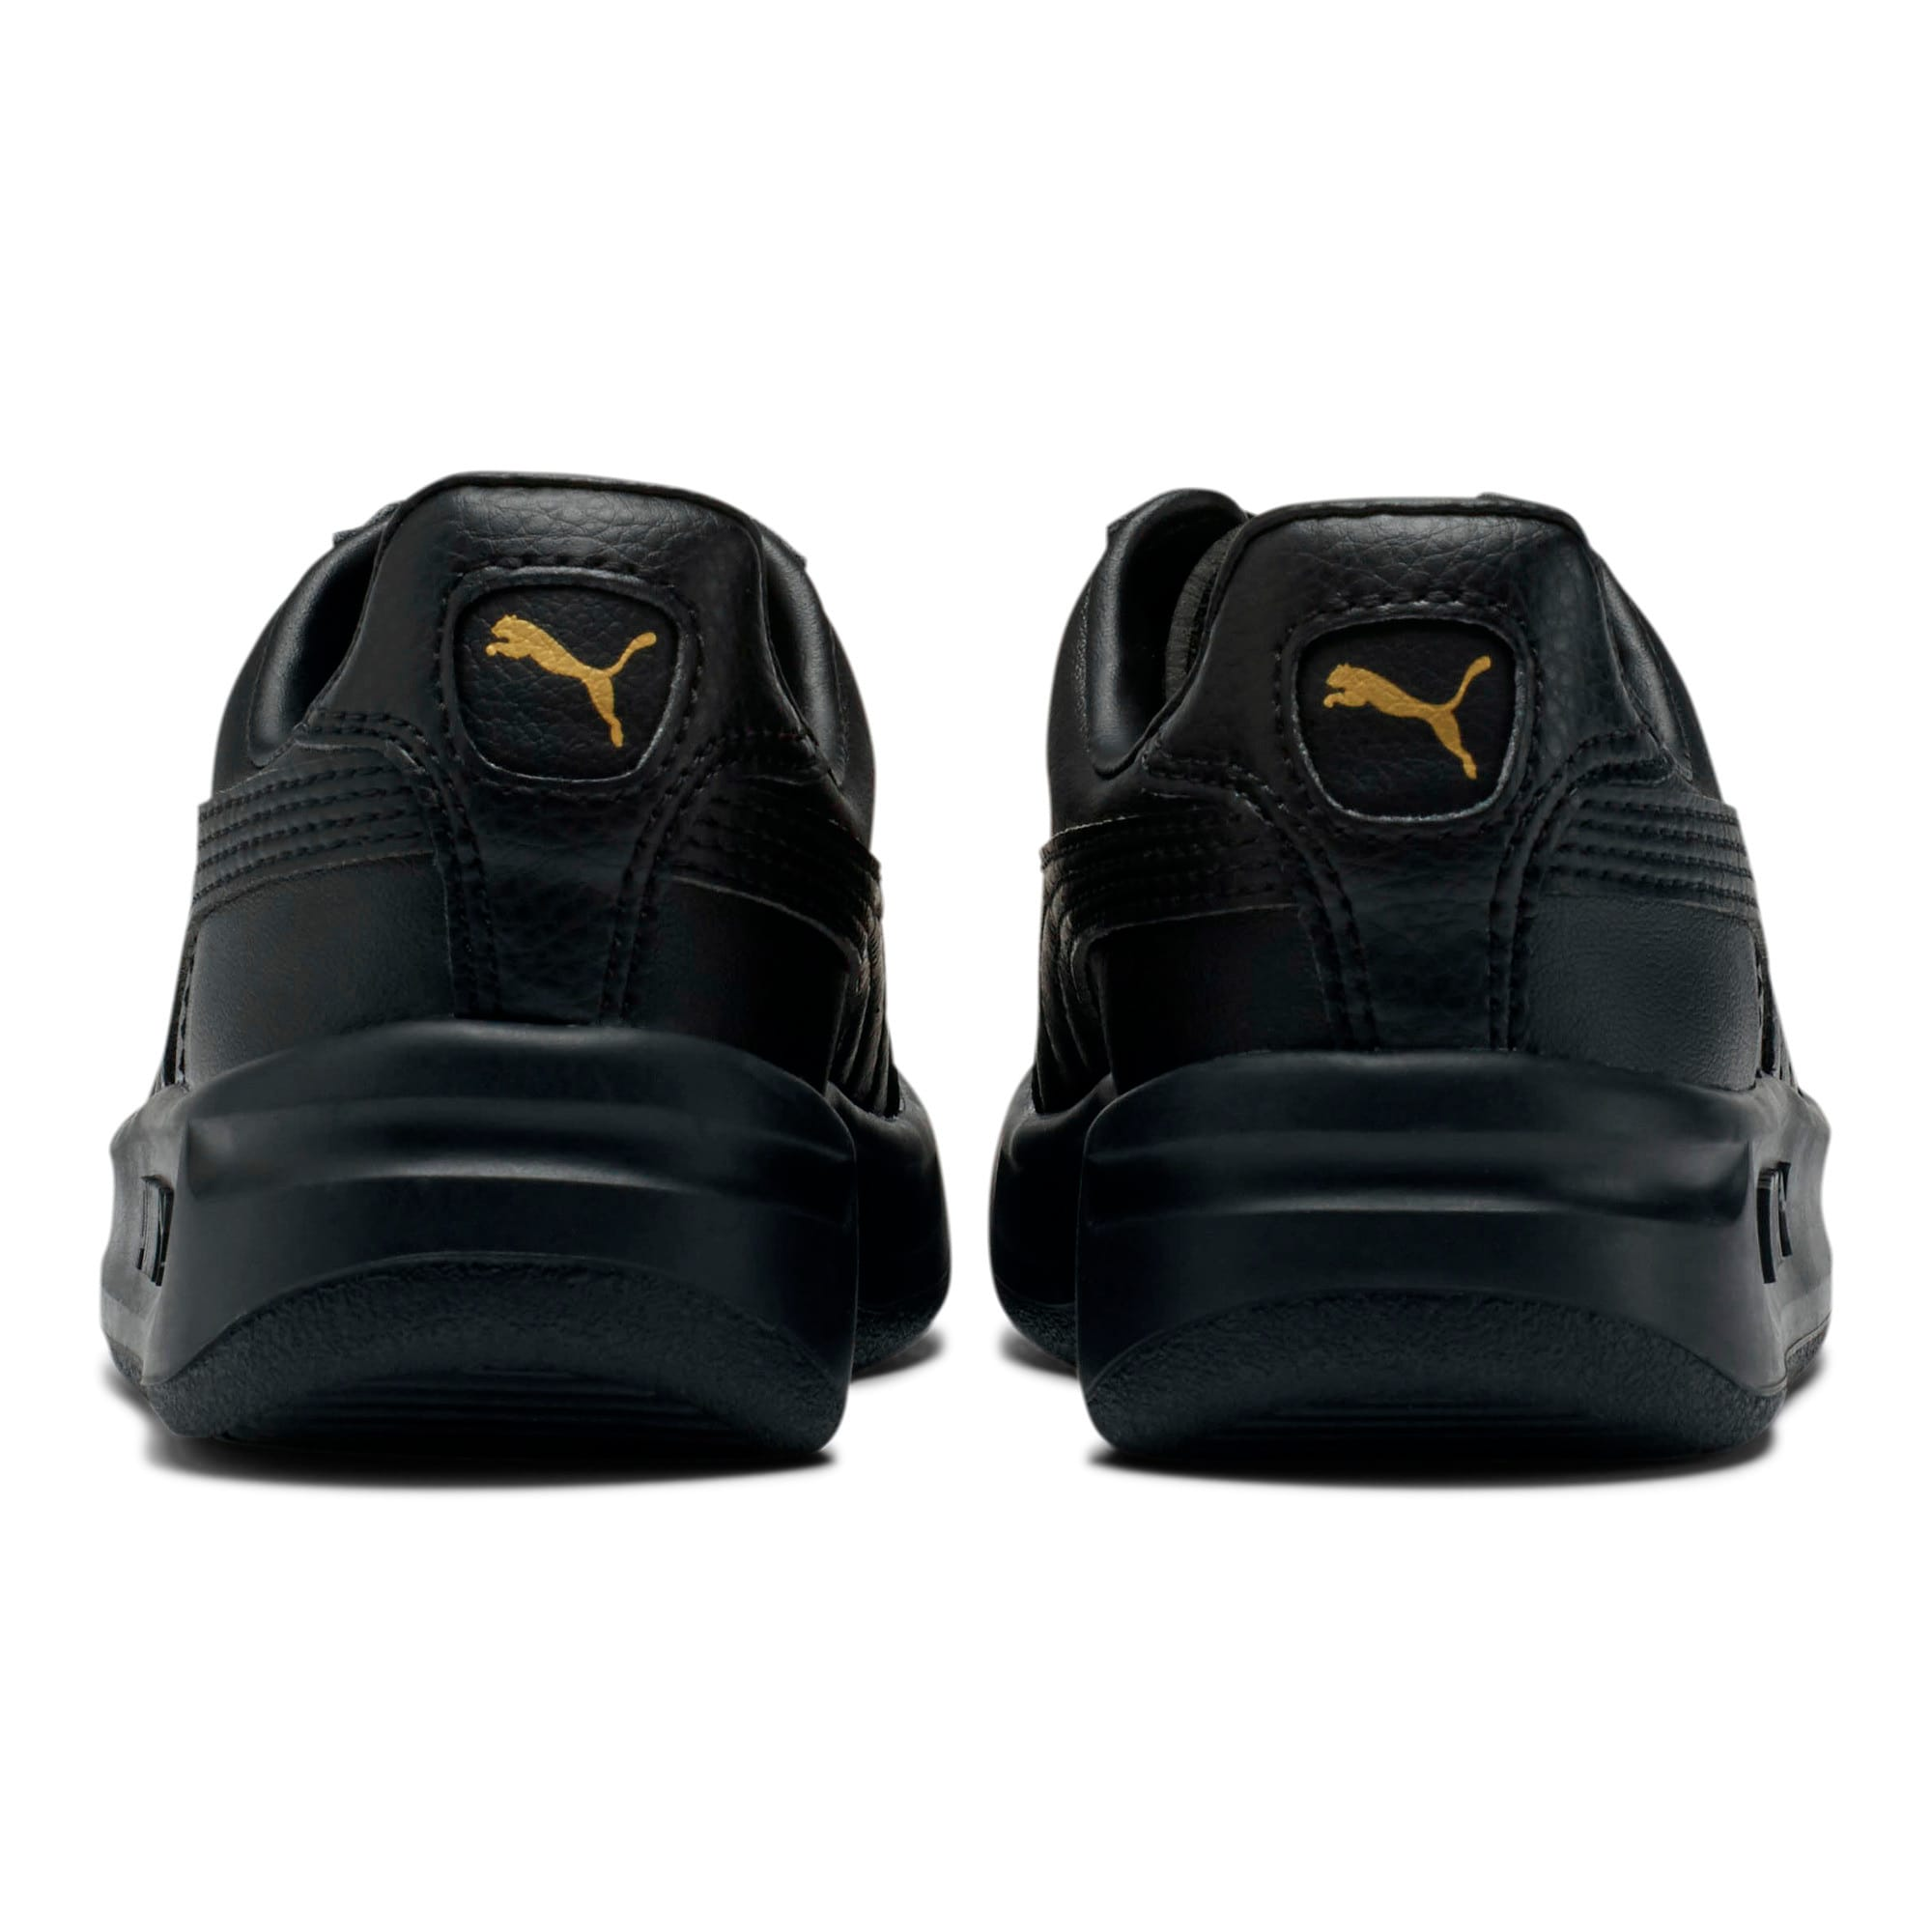 GV Special Little Kids' Shoes, Puma Black-Puma Team Gold, large